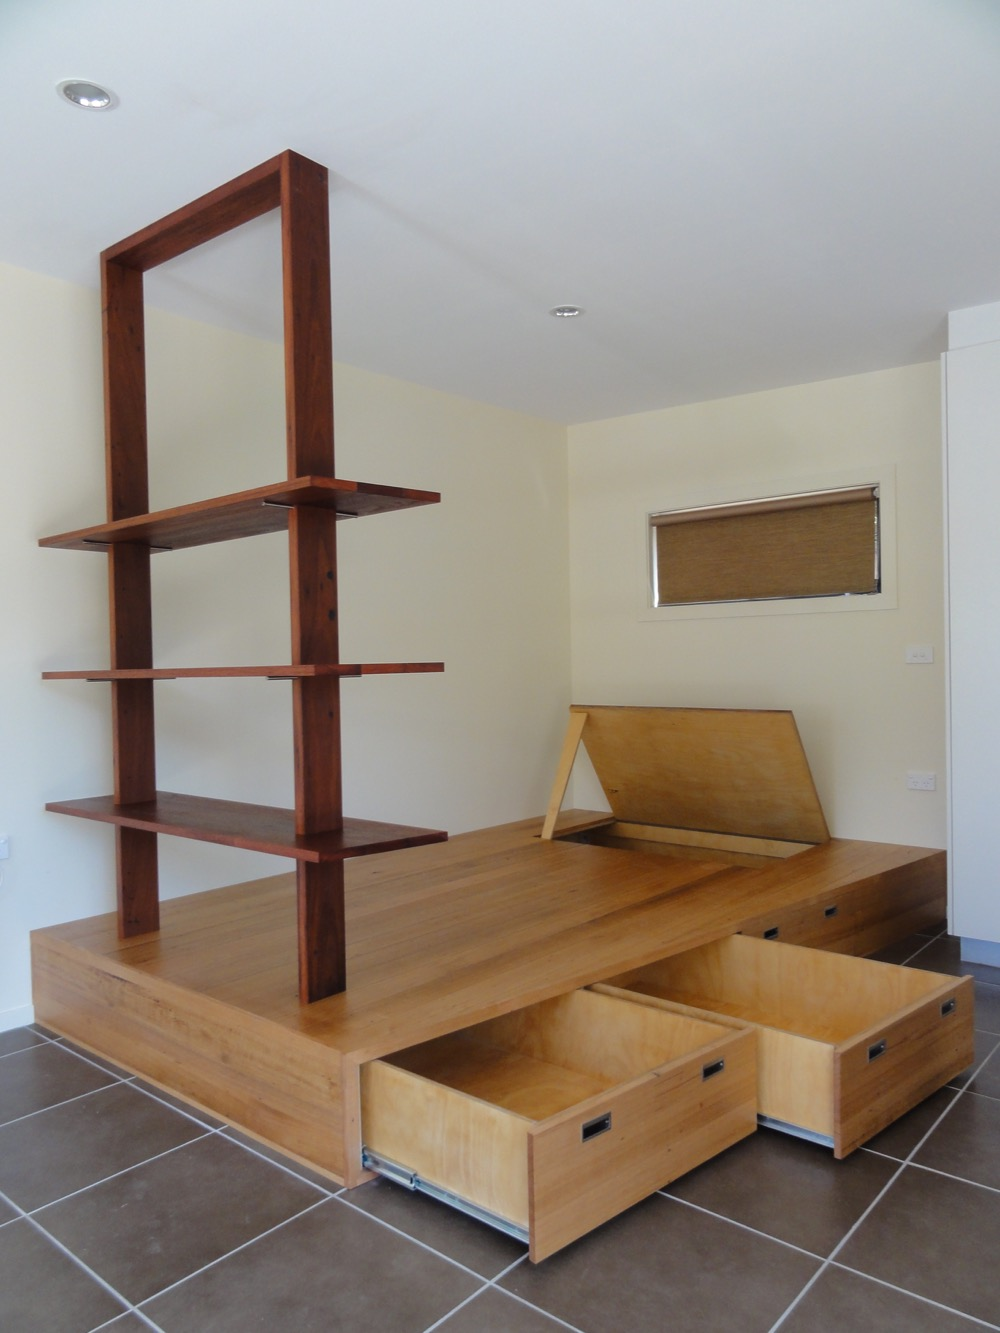 Bed Library in Mixed Red Hardwoods